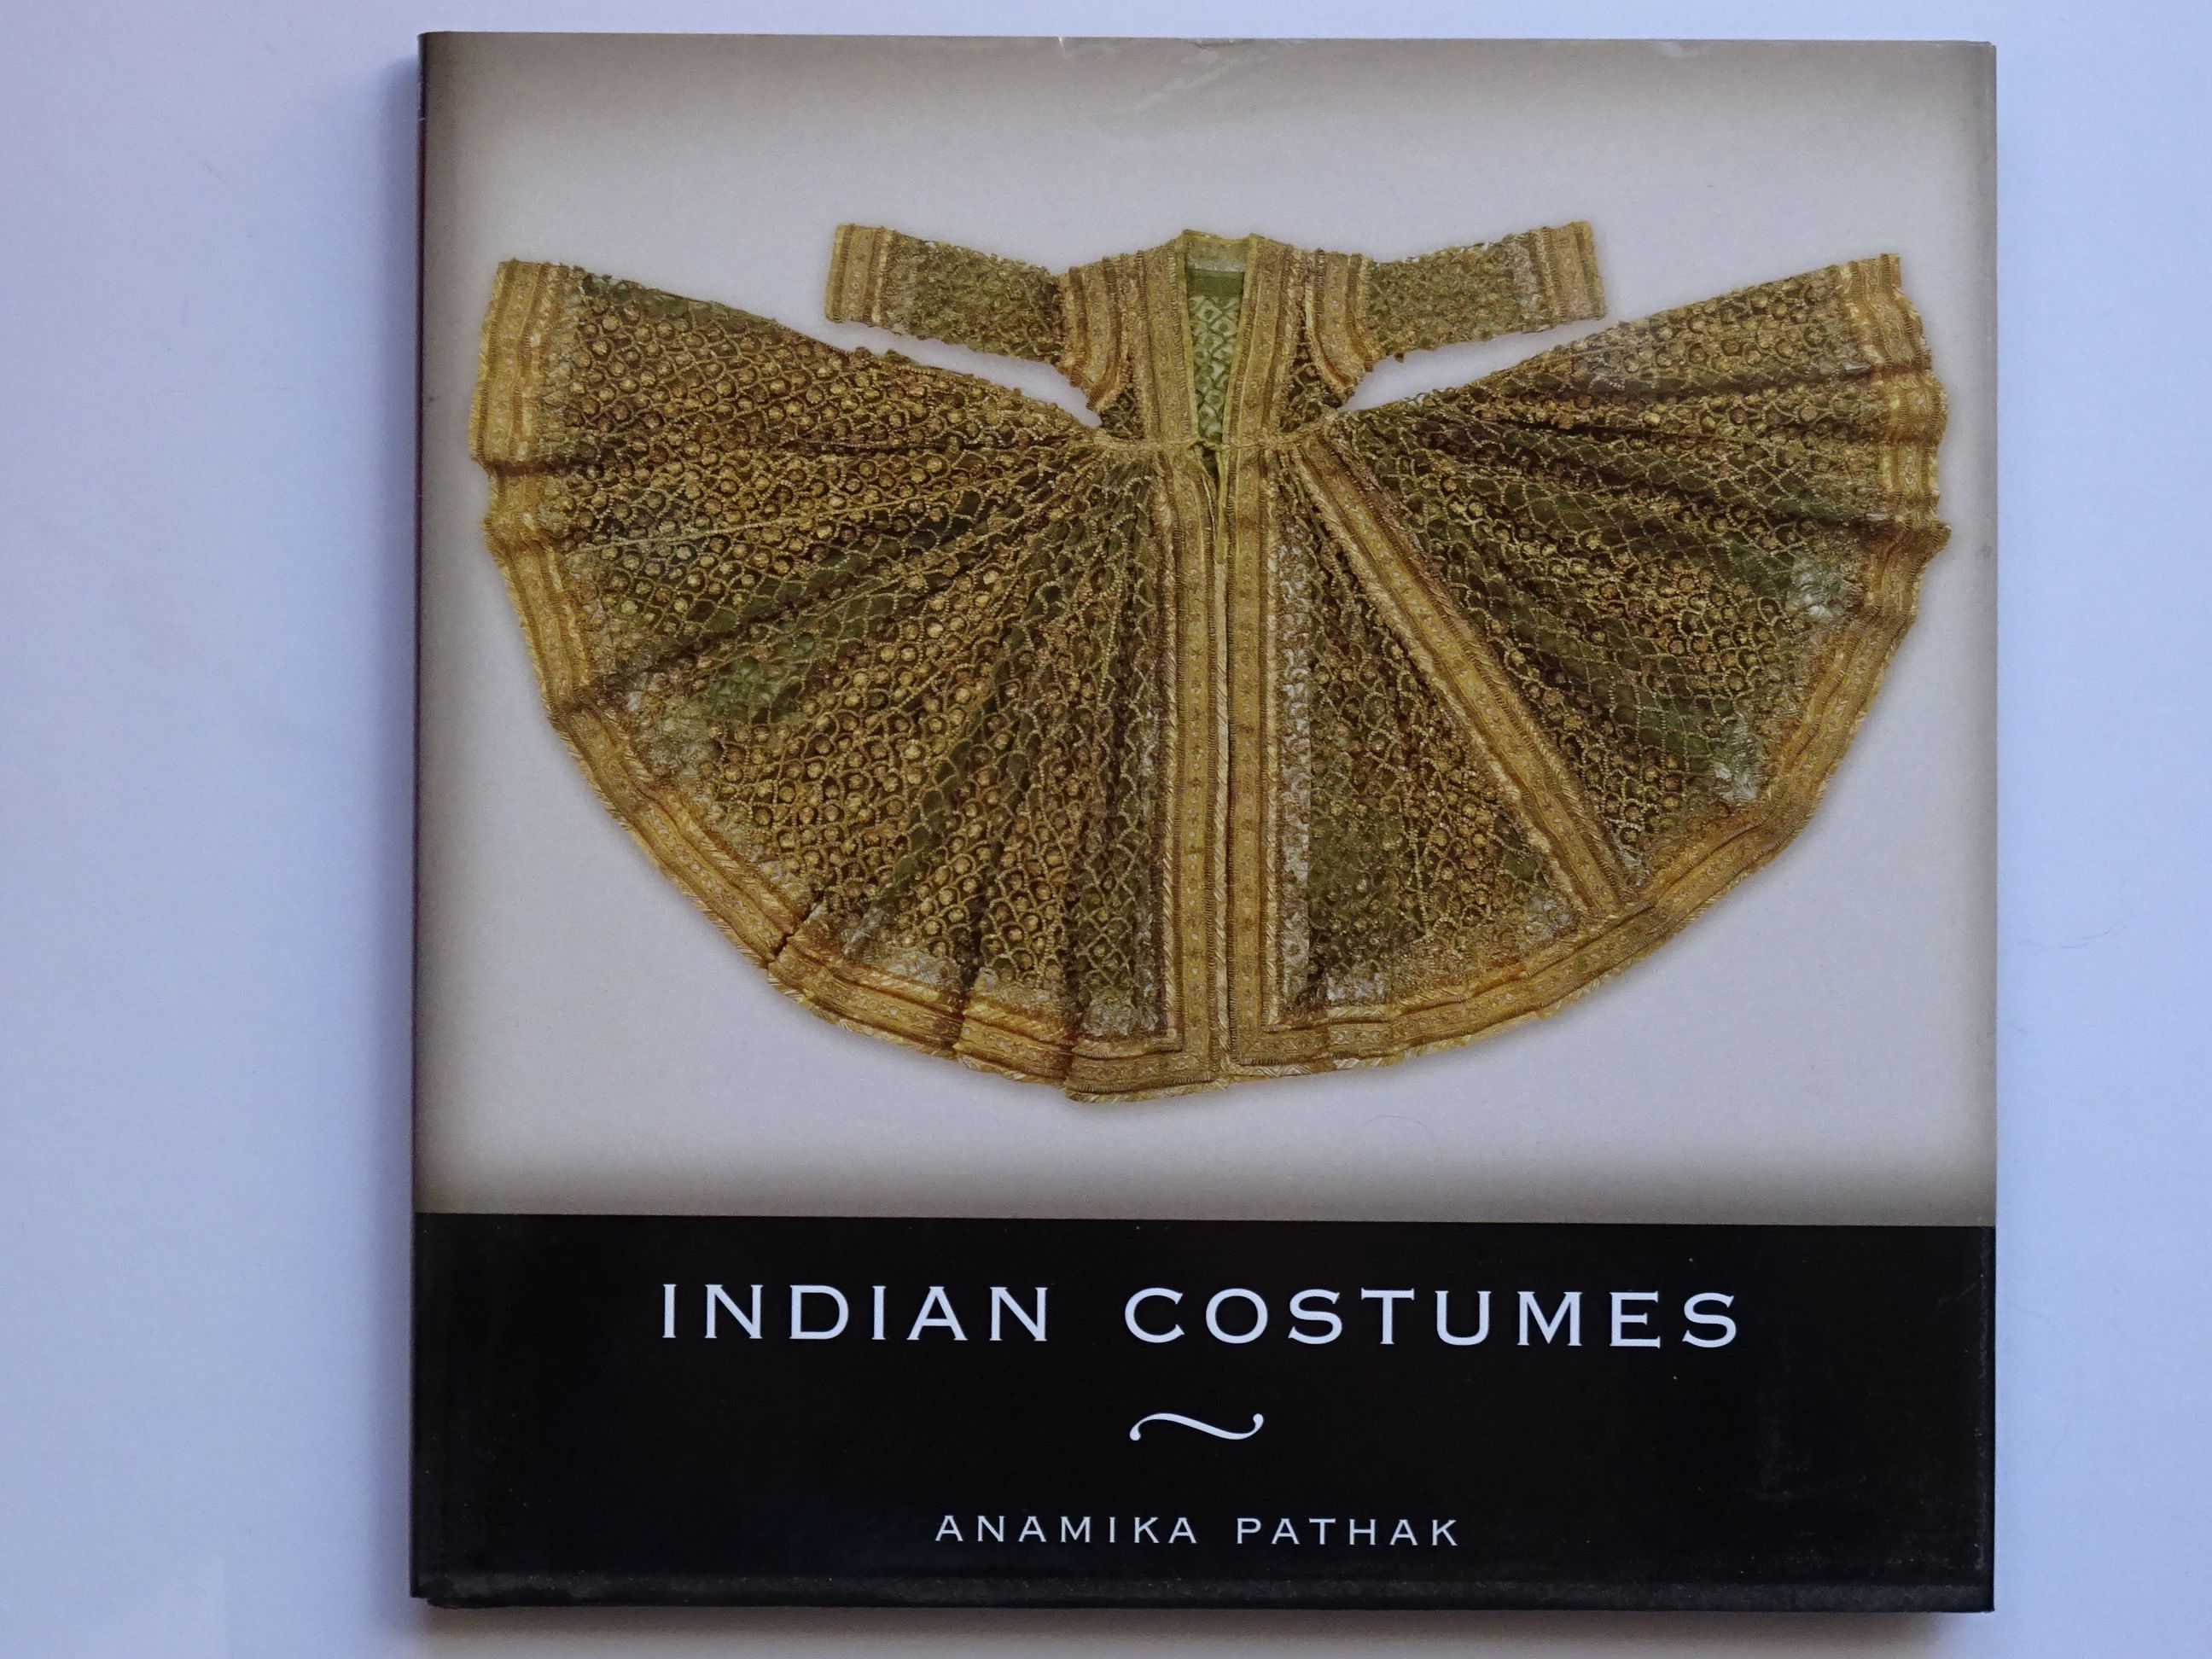 Pathak, Anamika - Indian Costumes